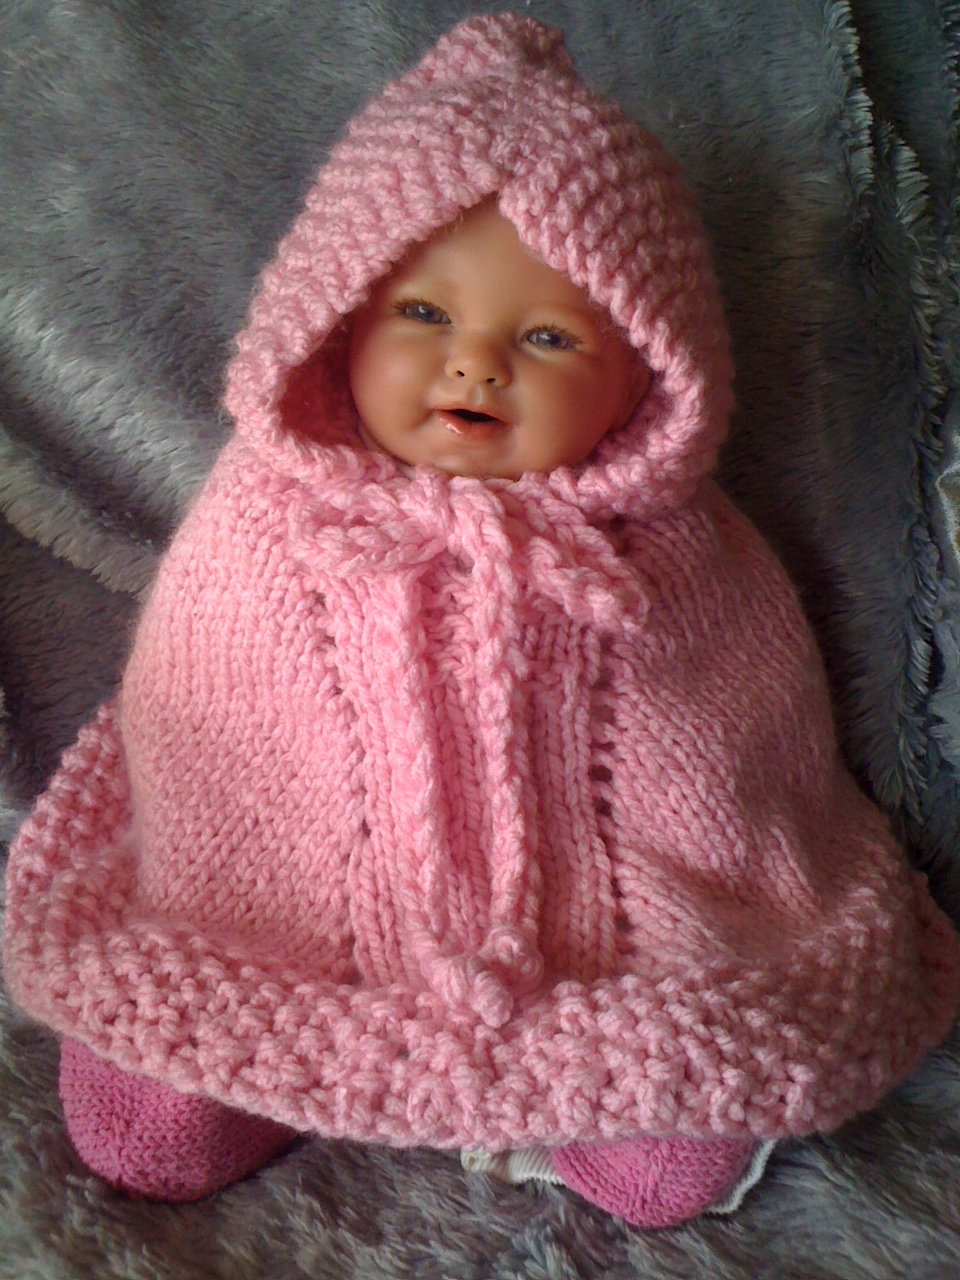 Baby Poncho Knitting Patterns : Claras Corner: THE MIDDLE OF MARCH???????? NO WAY!!!!